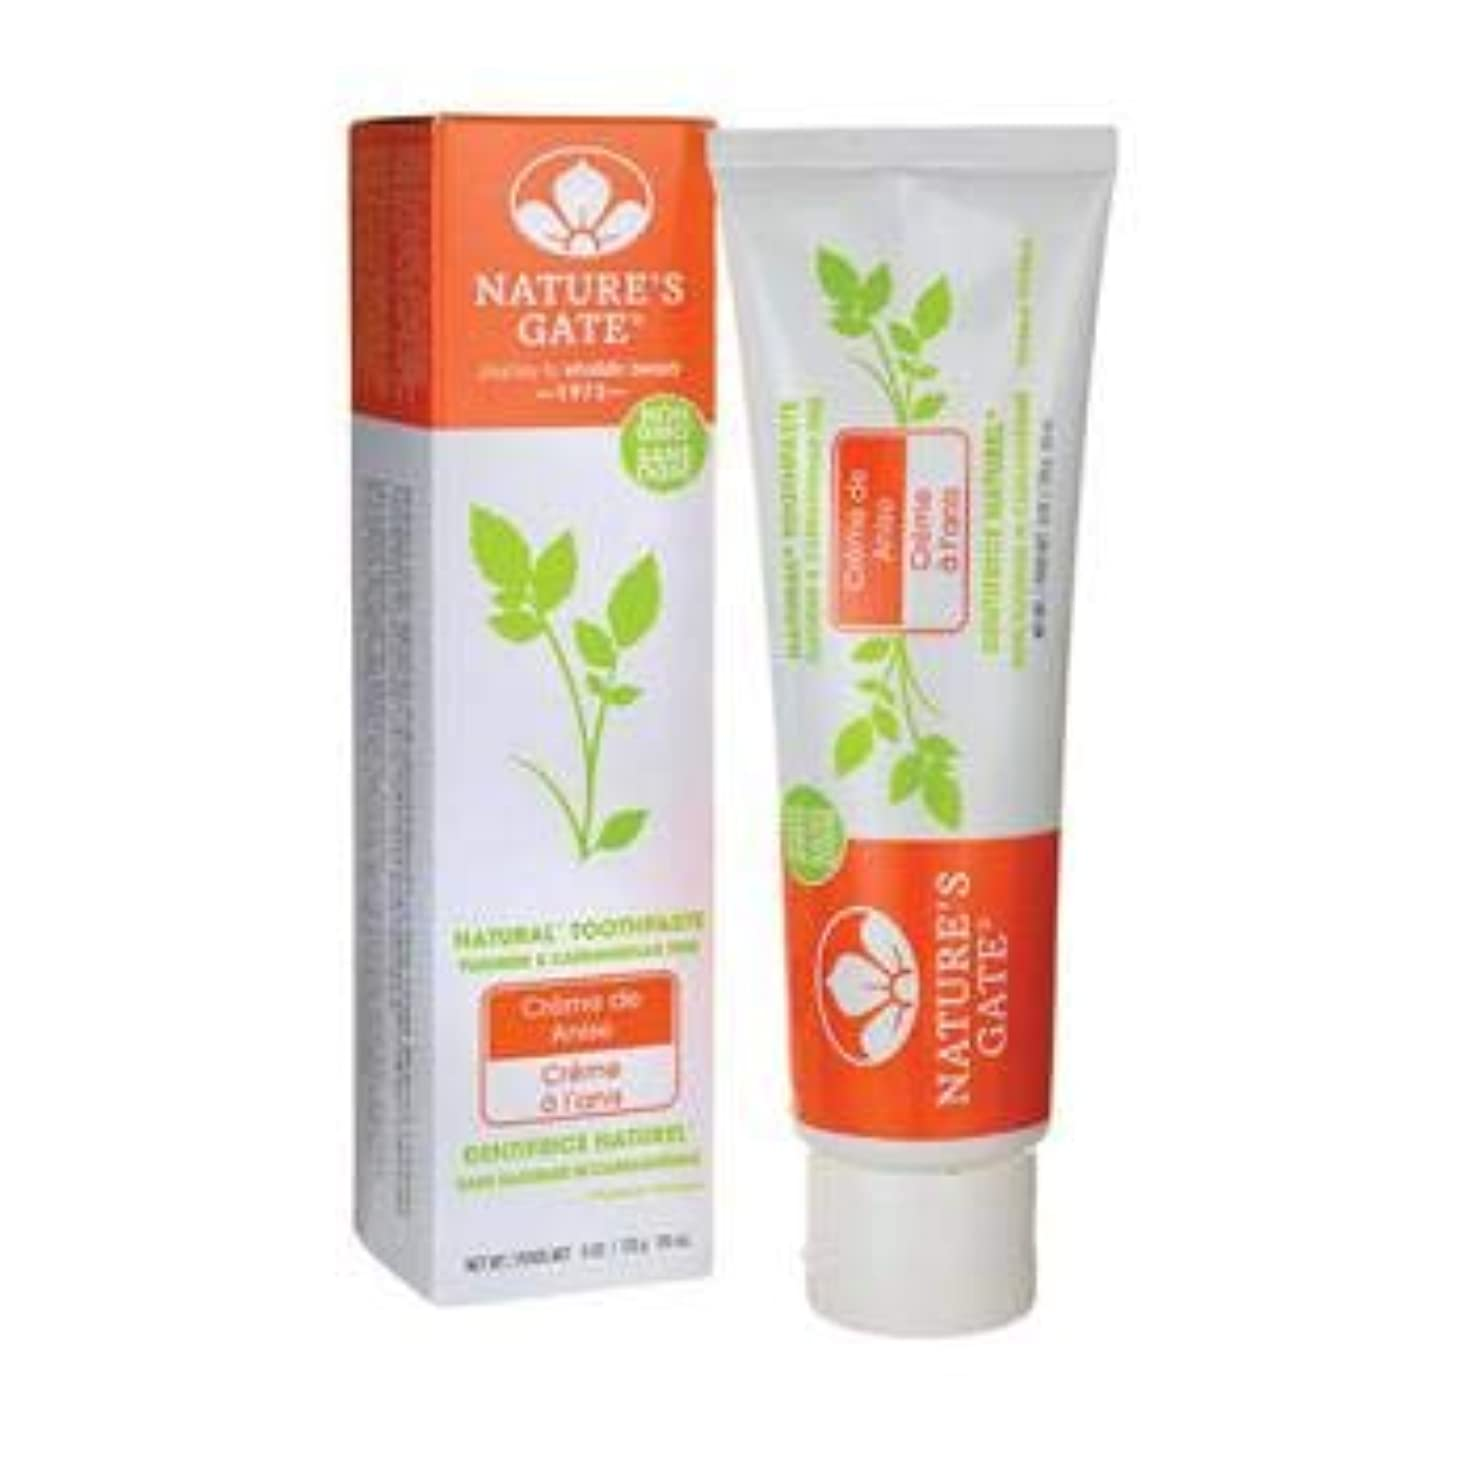 家事をする配管異議海外直送品Toothpaste Creme De, Anise 6 Oz by Nature's Gate